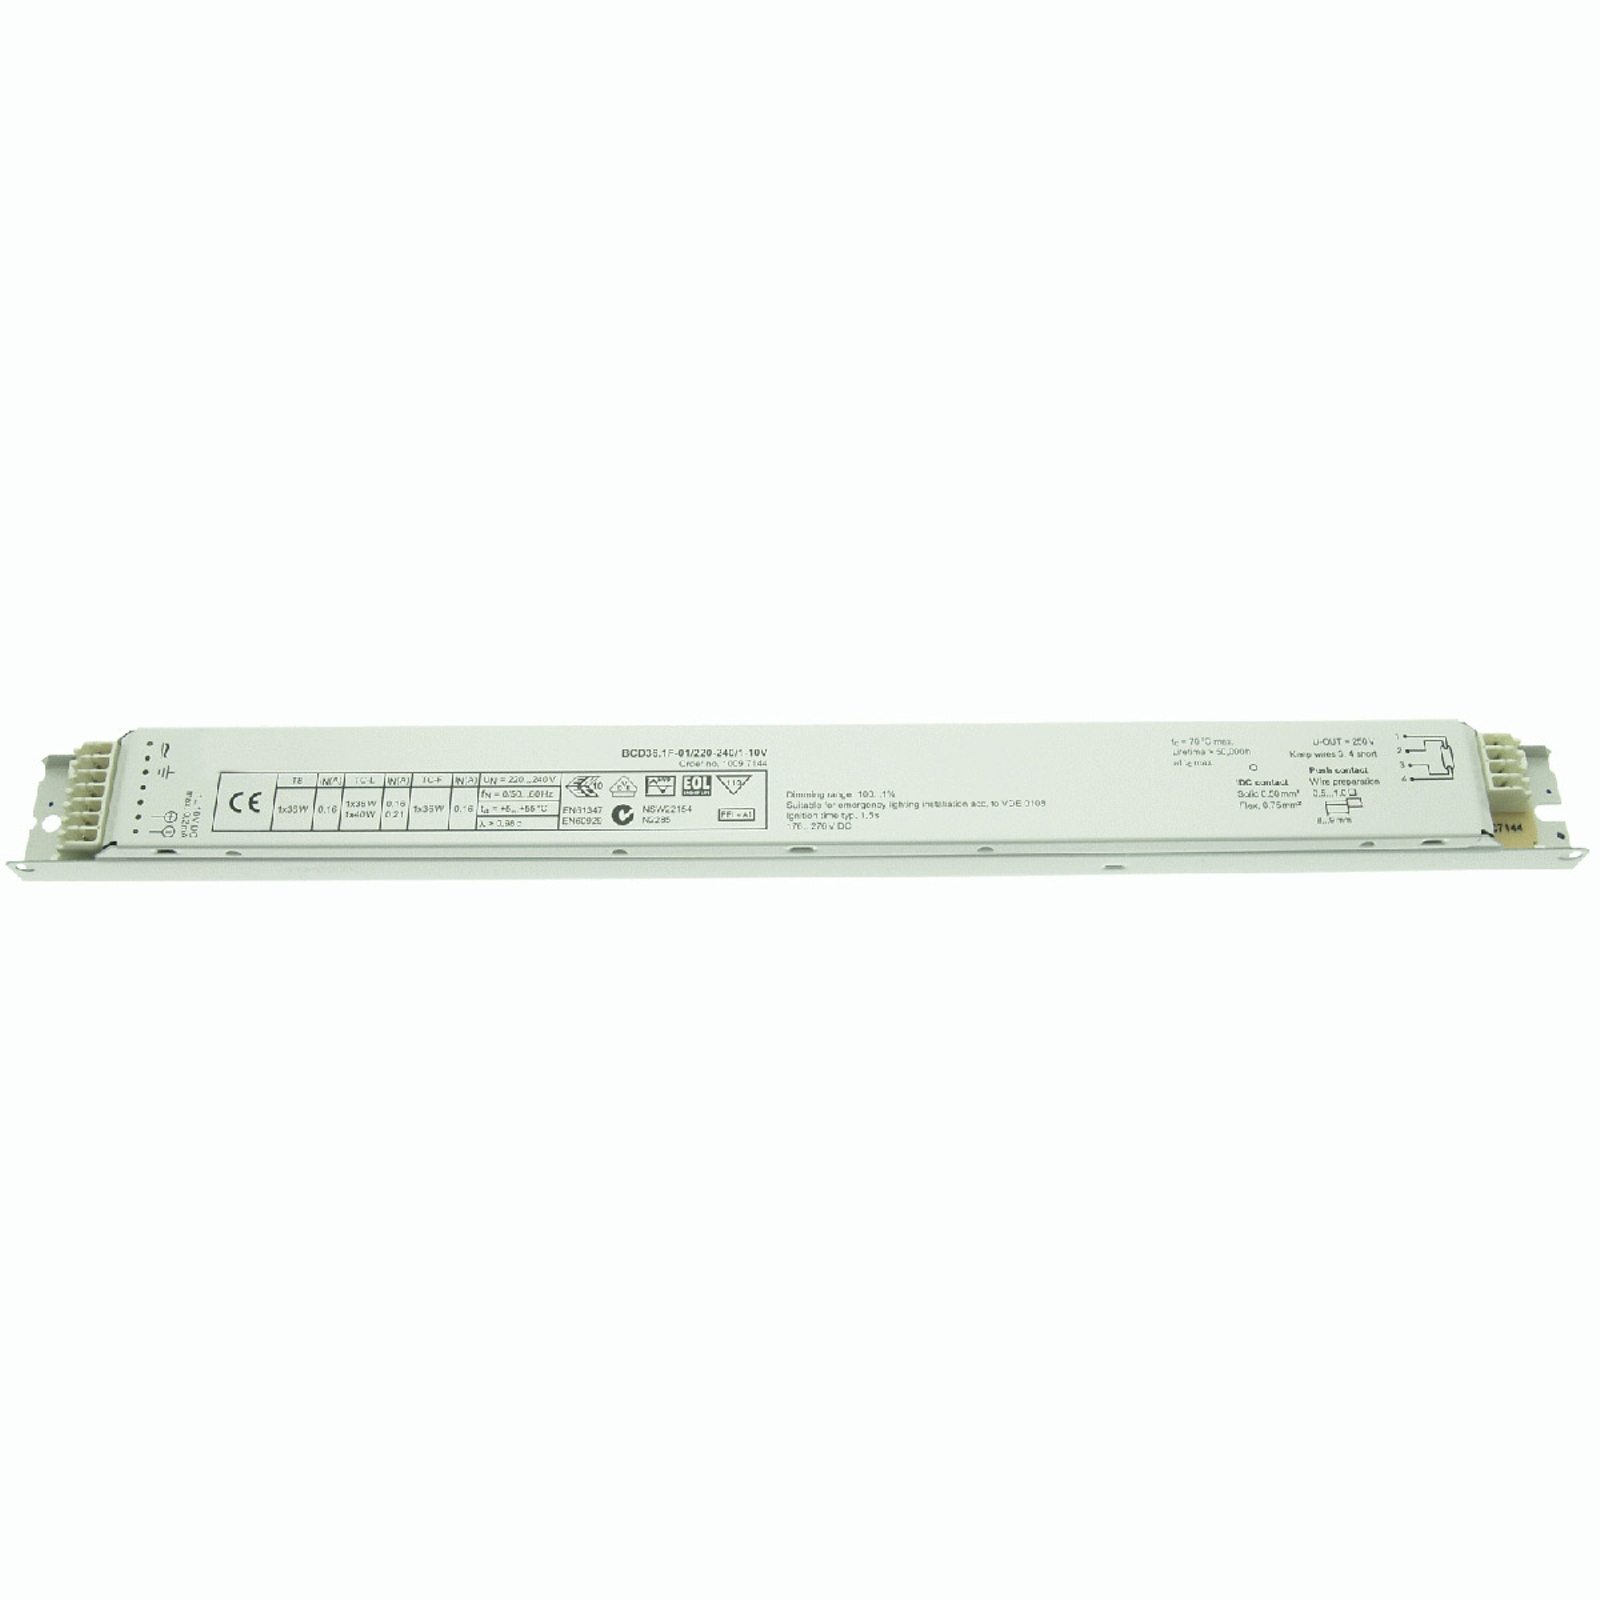 BE 18/36W T8 BCD36.1F-01/220-240/1-10V dimmable